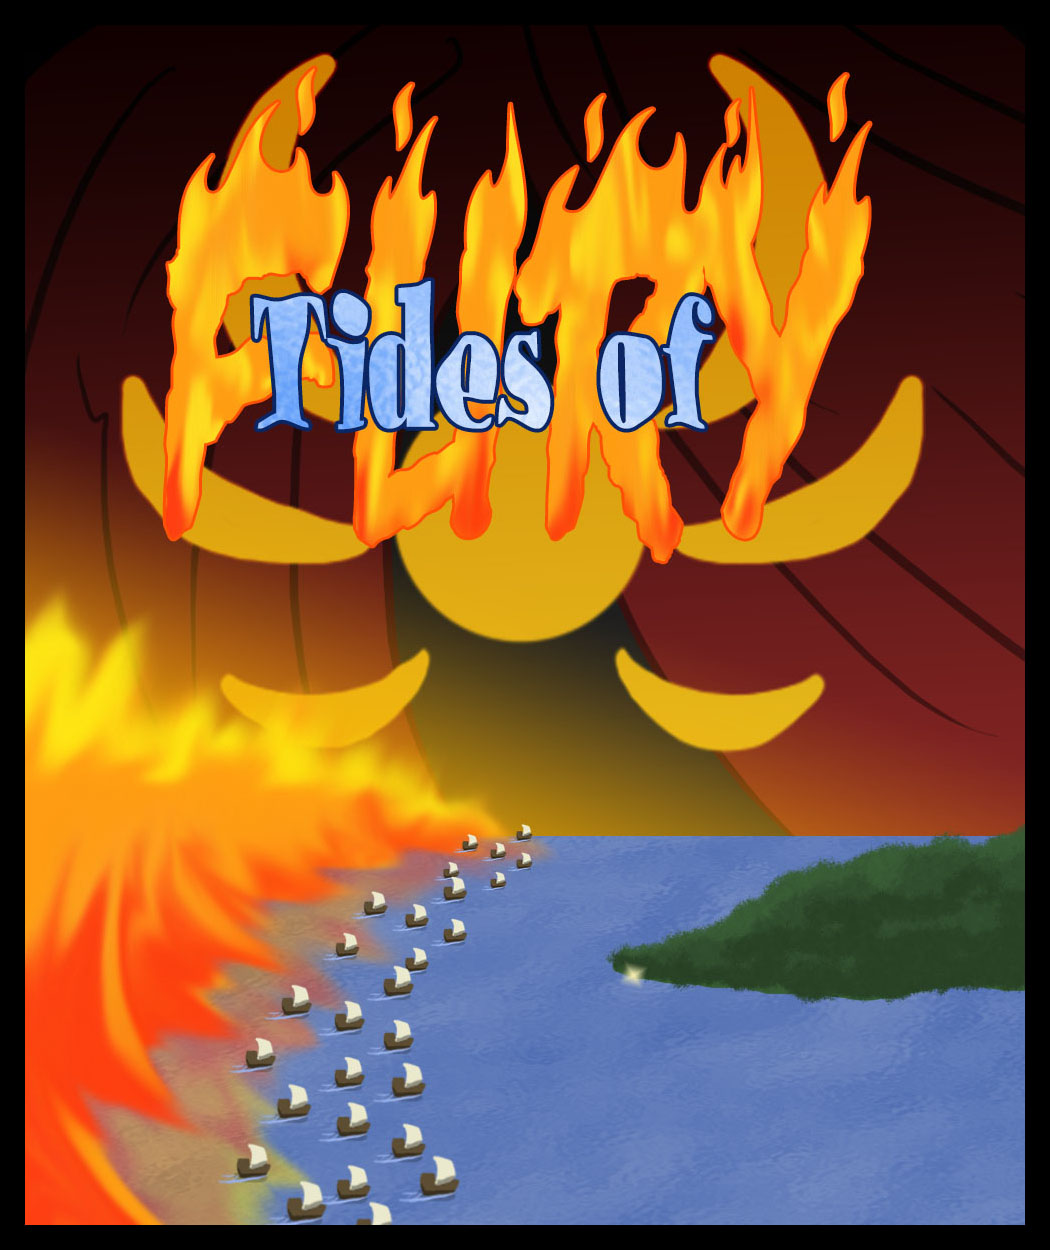 Tides of Fury